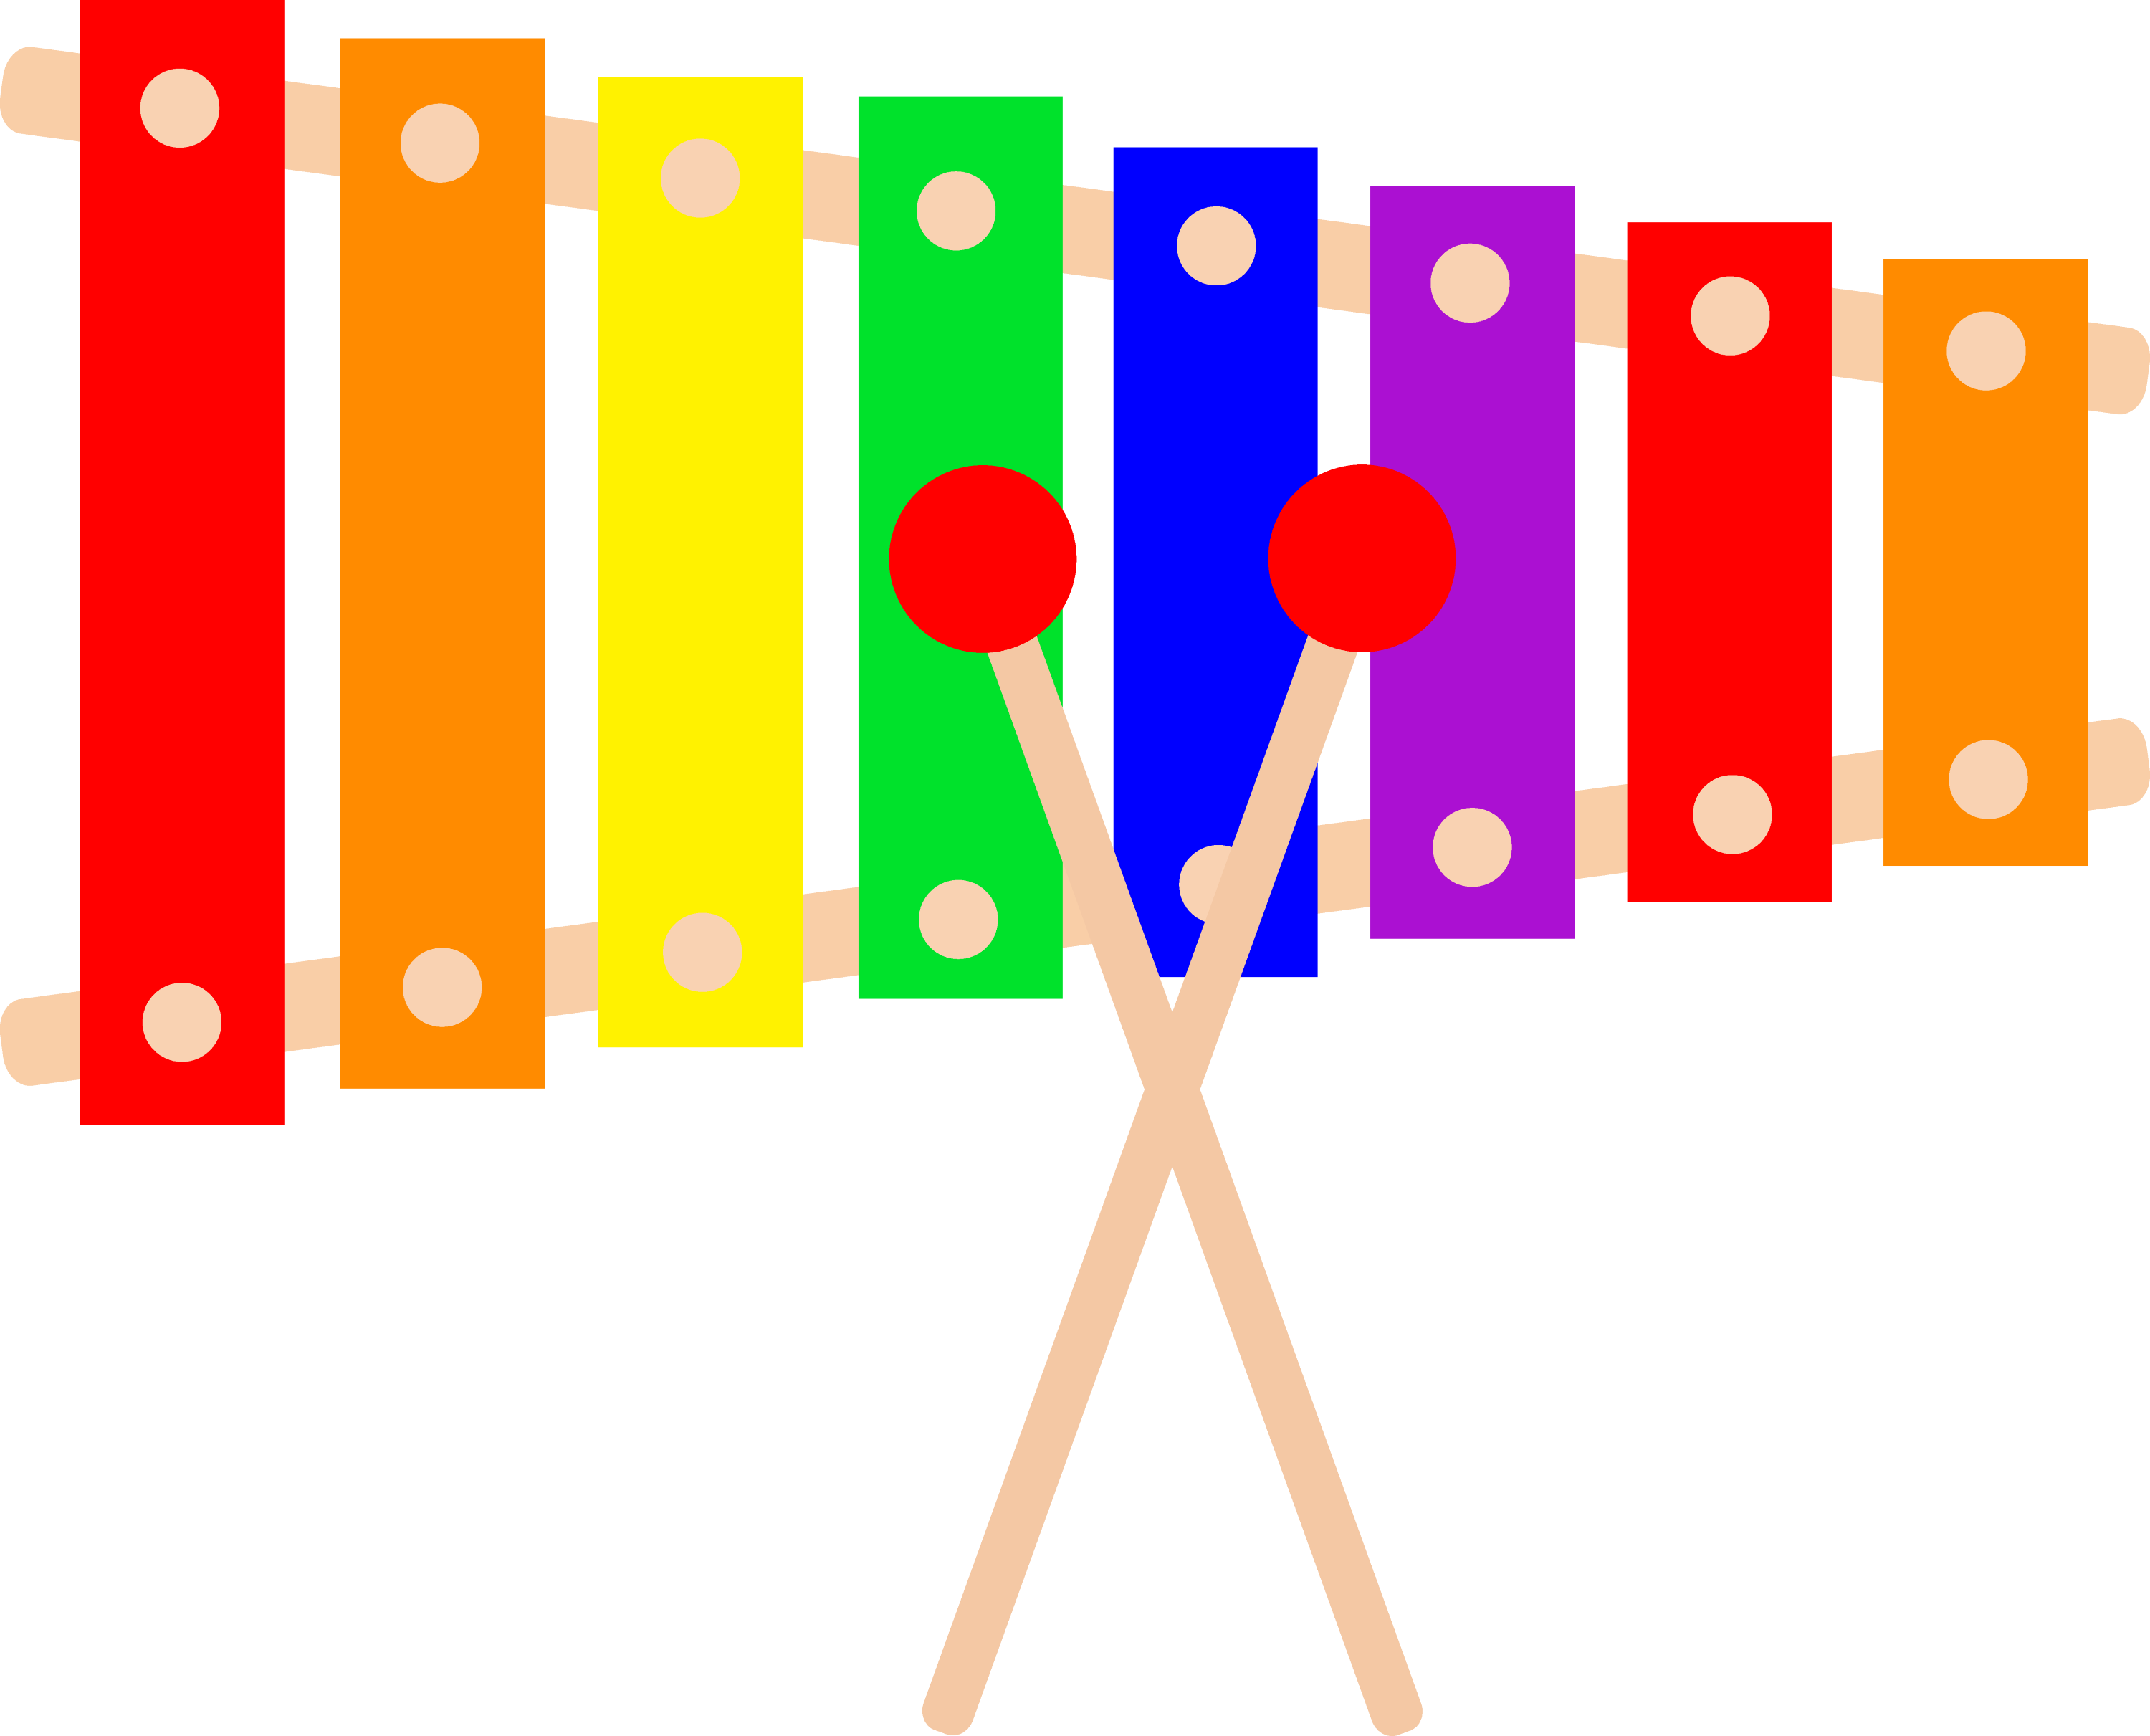 Cute Xylophone Design